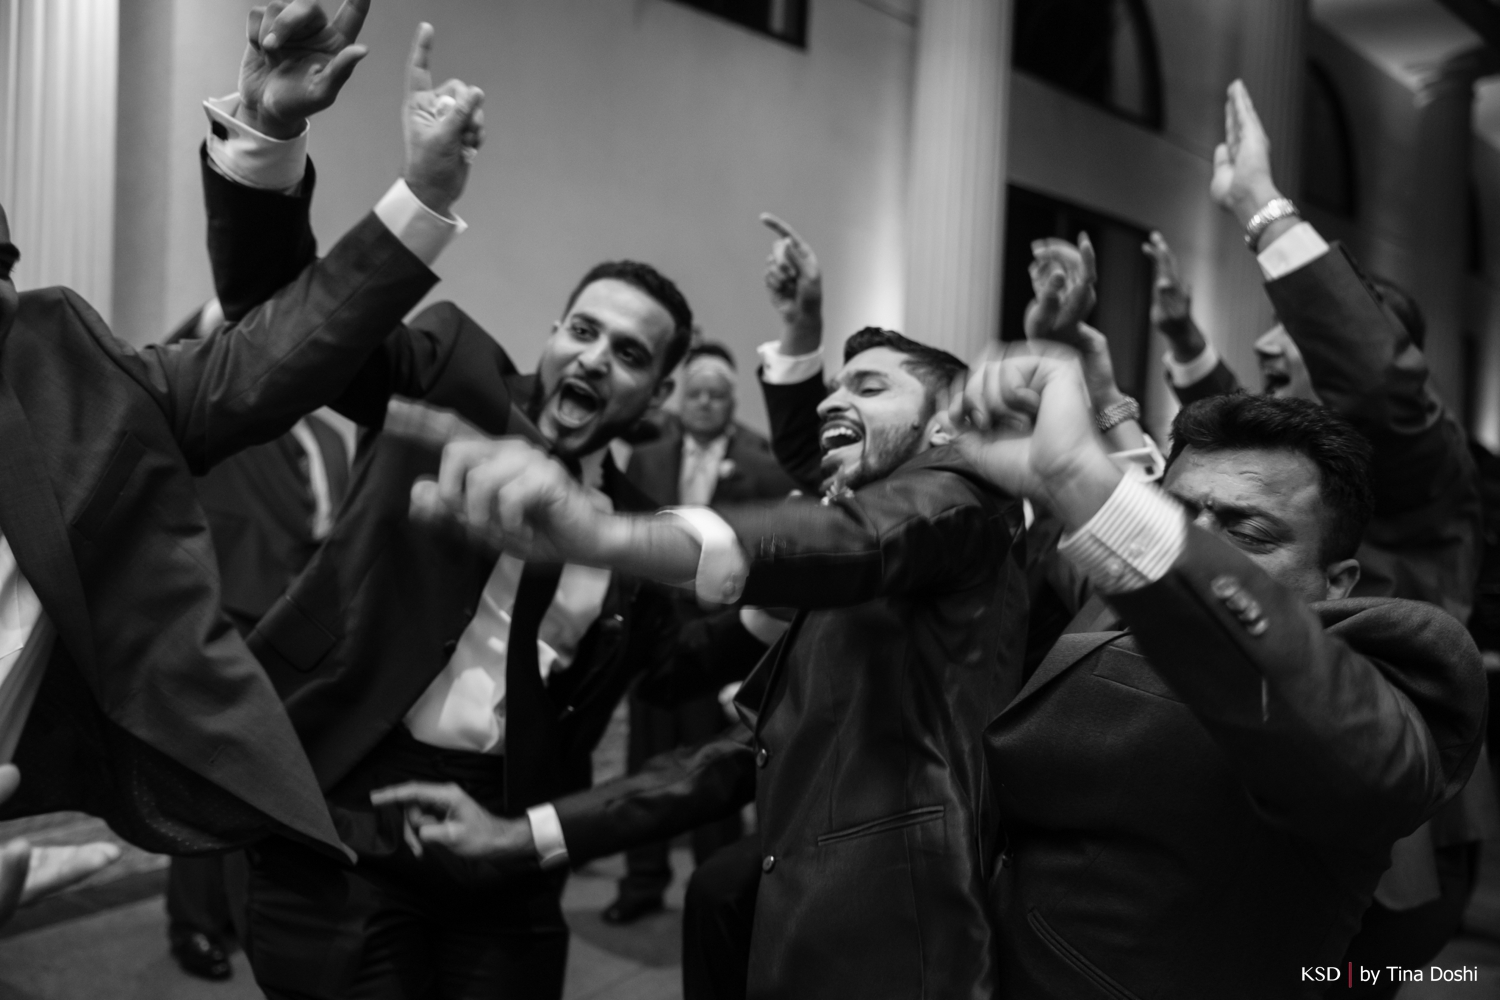 nj_south_asian_wedding_0099